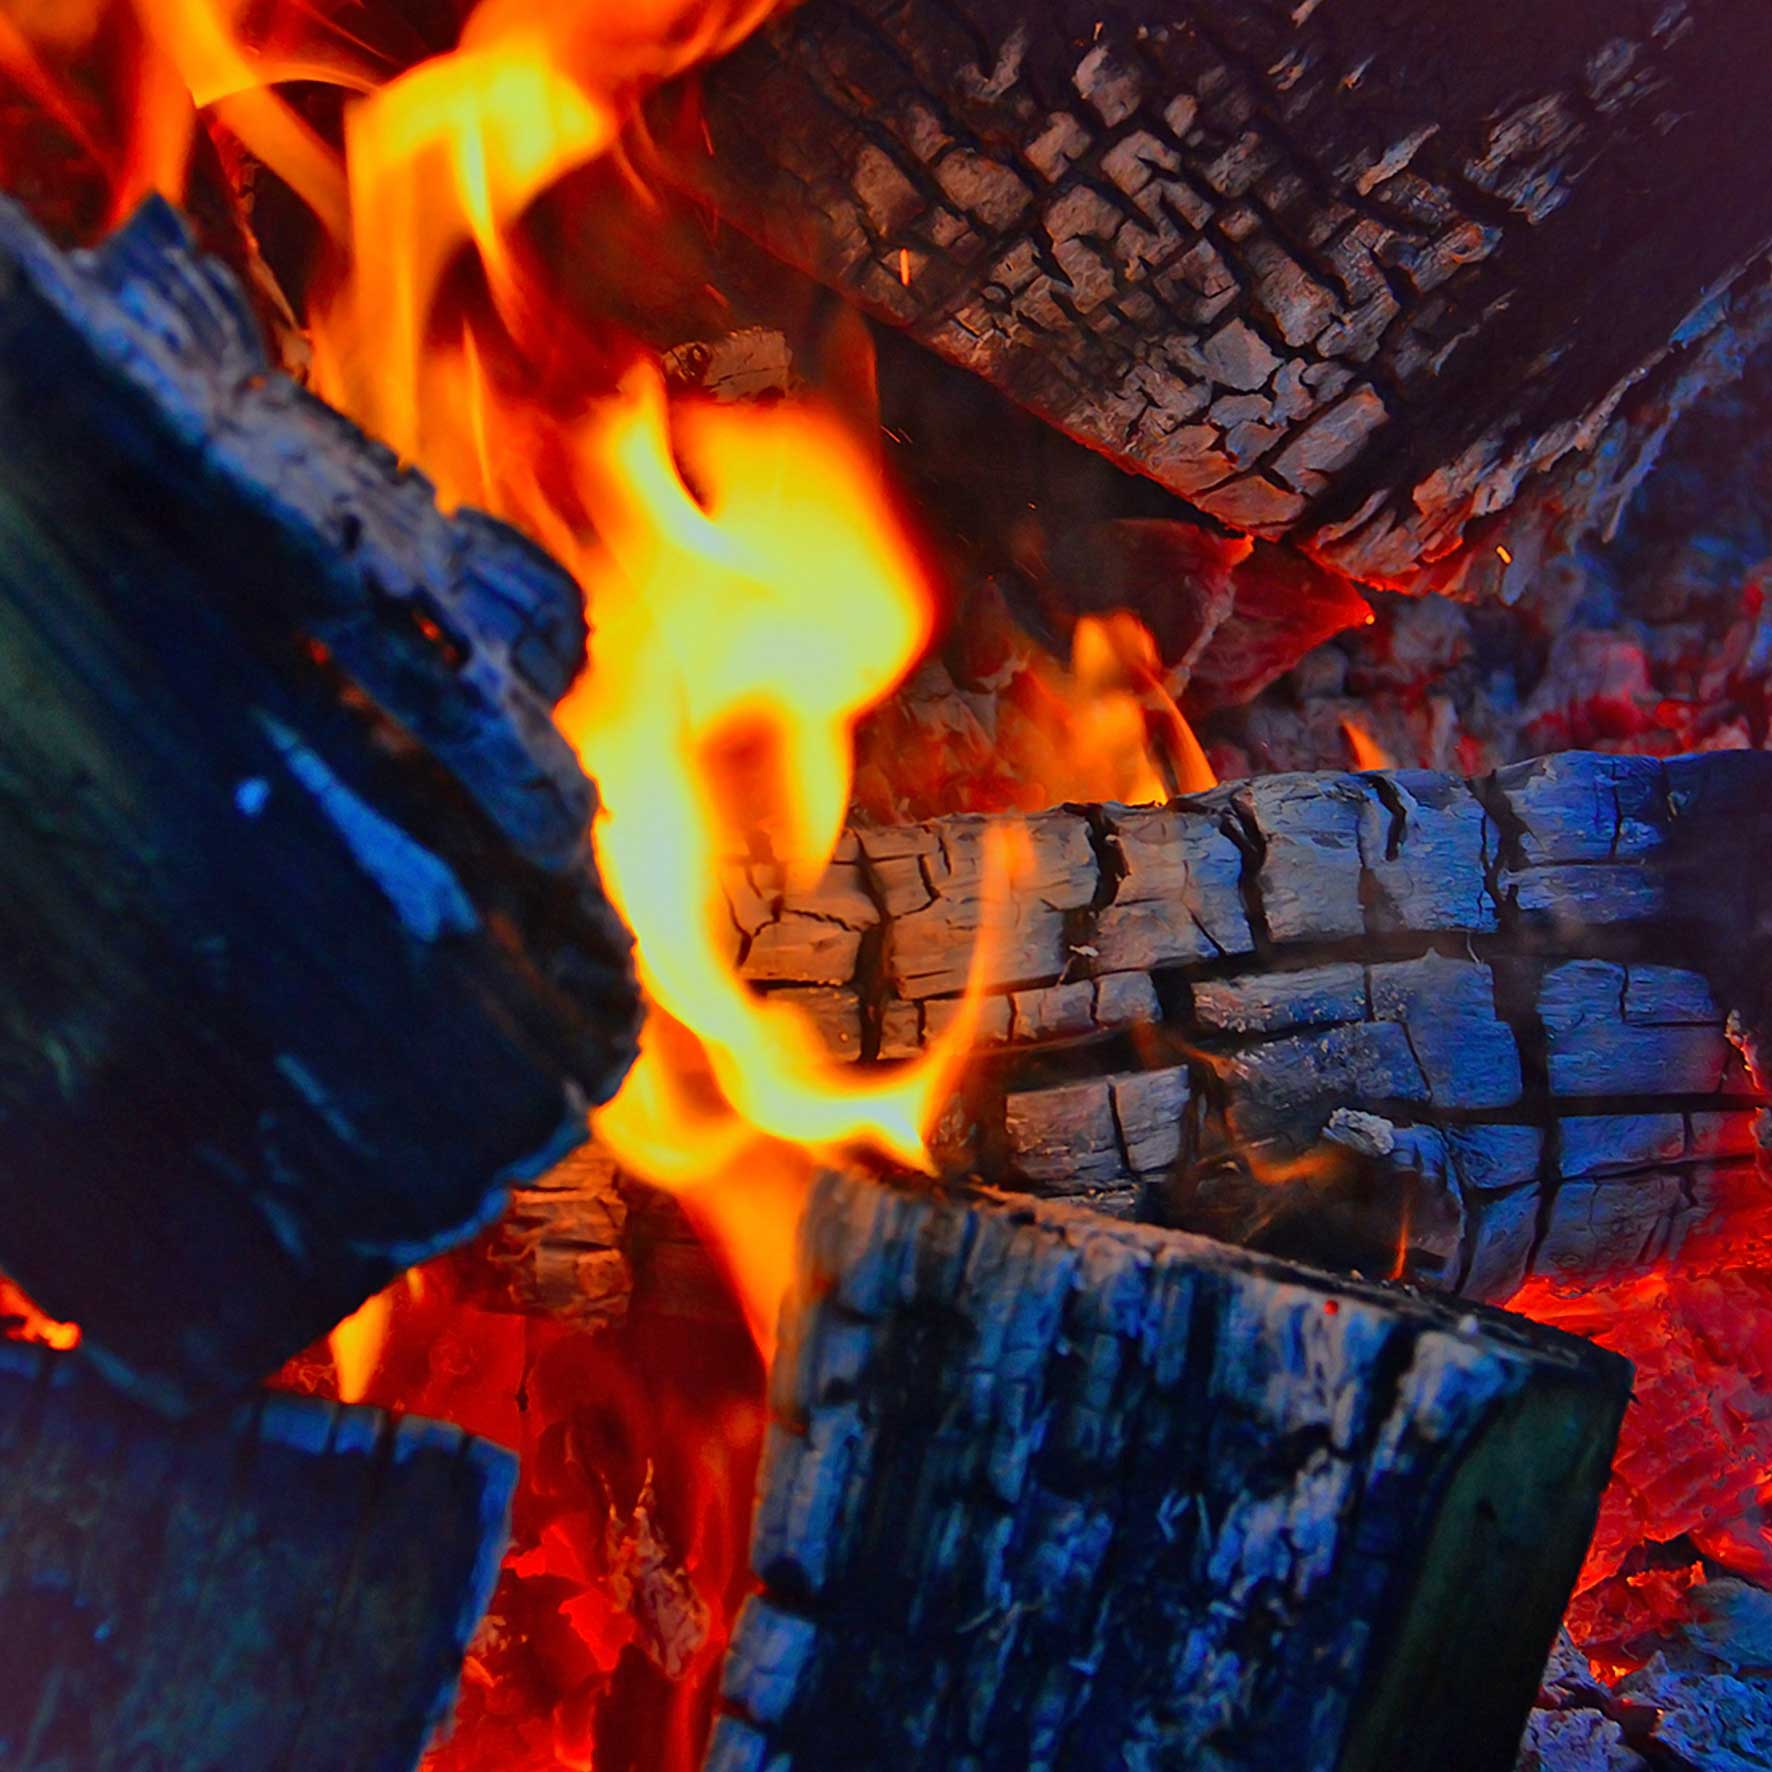 glowing firewood embers with small flame